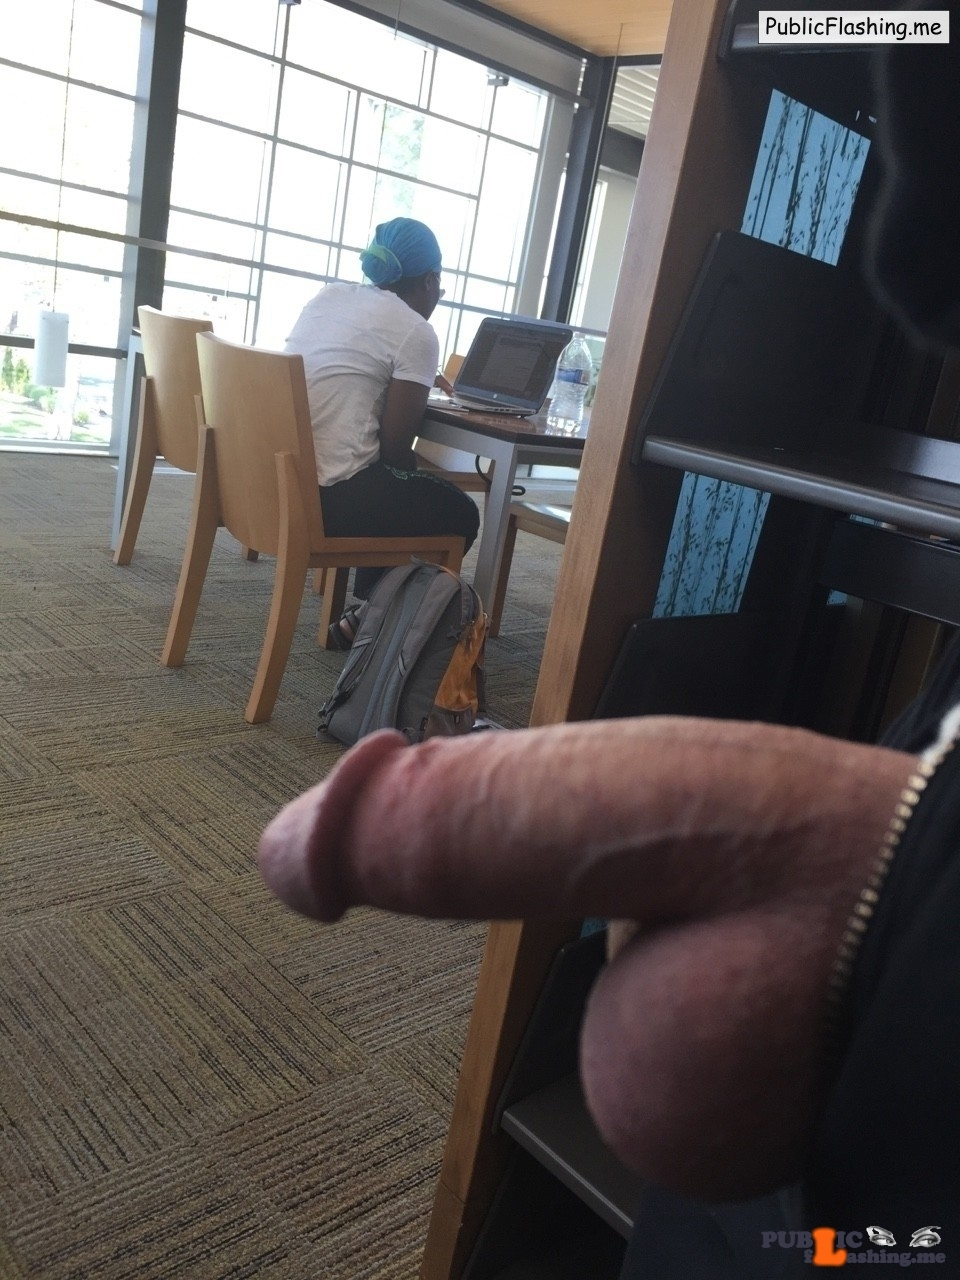 tumblr dick flash